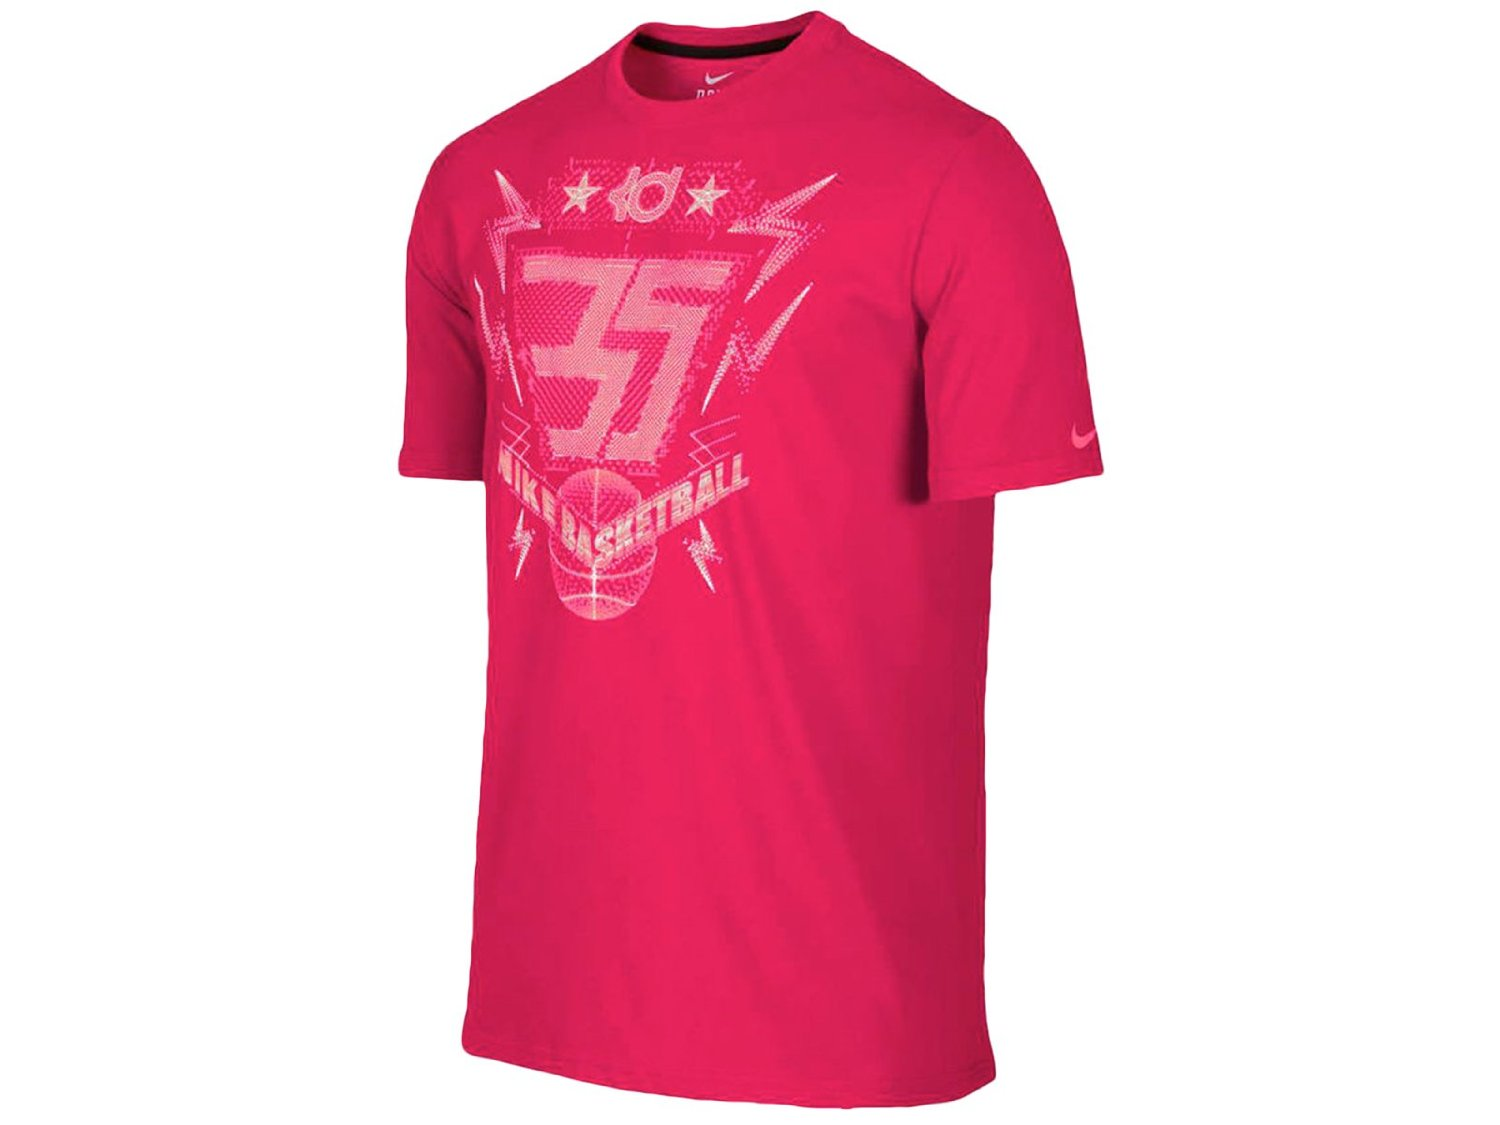 huge discount 69762 2e813 Get Quotations · Men s Nike KD Kevin Durant Particle Crest Basketball T- Shirt 618900-691 Size XL